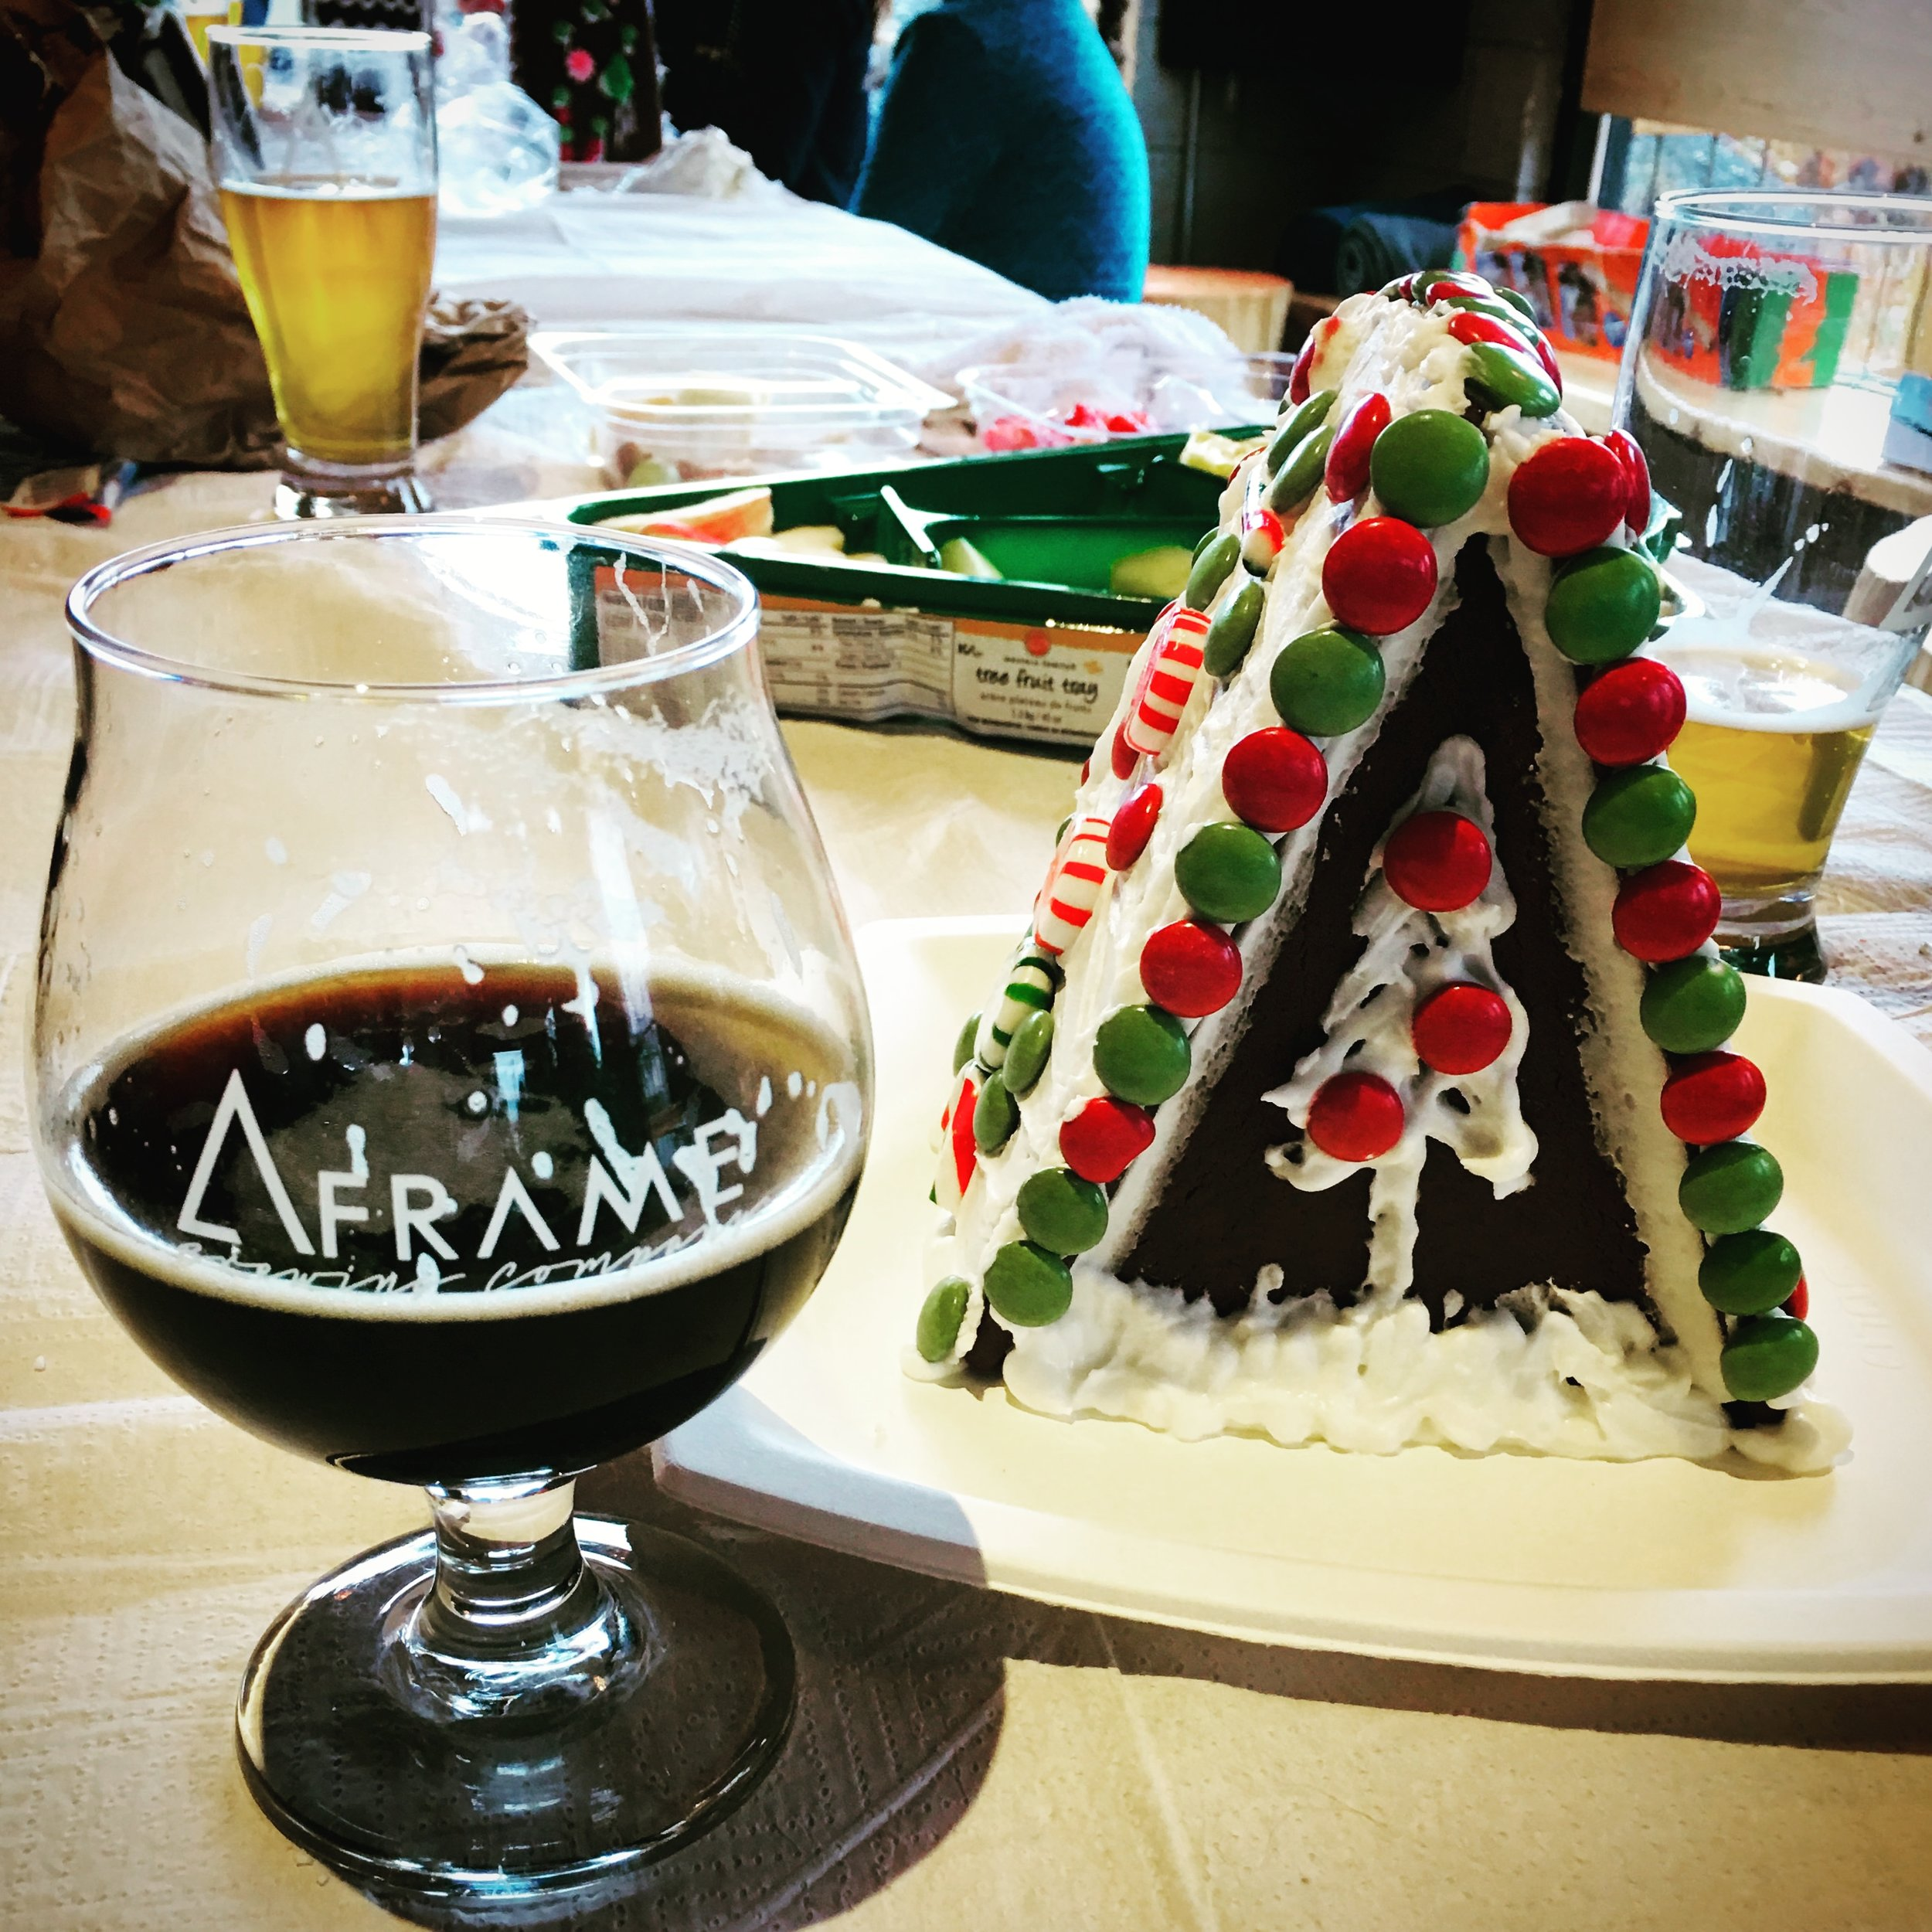 Pre-order your A-FRAME Gingerbread Kit for $22 in the Tap Room by Dec 6th. Kits include 4 gingerbread pieces to assemble, icing and candies for decorating.